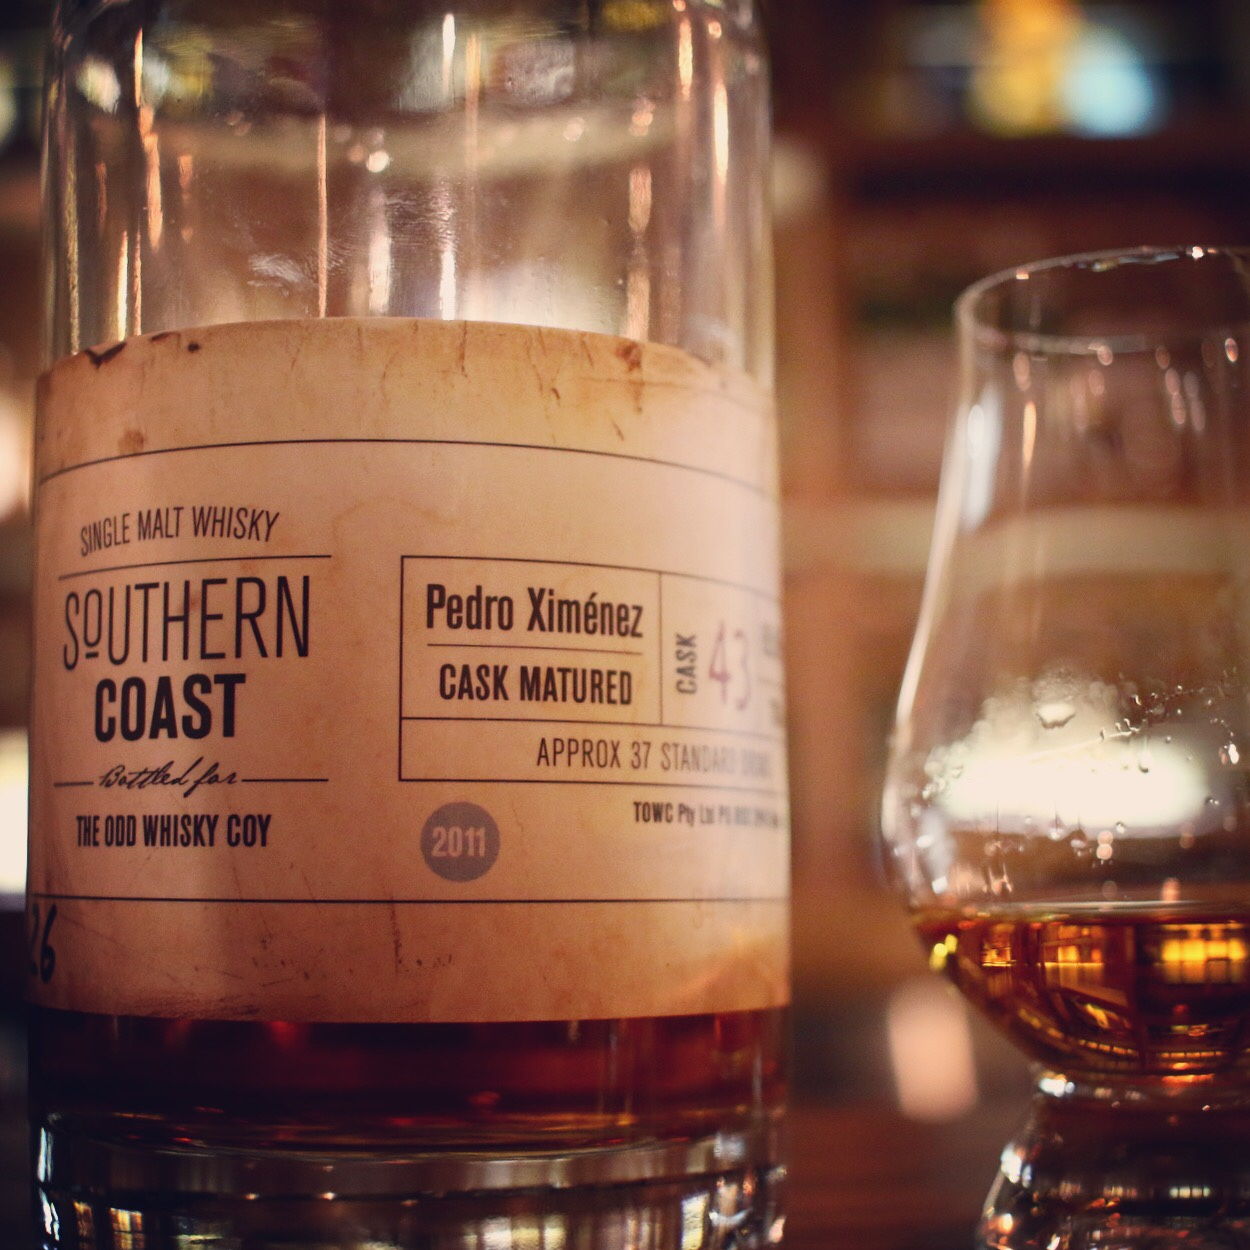 Dram Review: The Odd Whisky Coy Southern Coast Cask 43